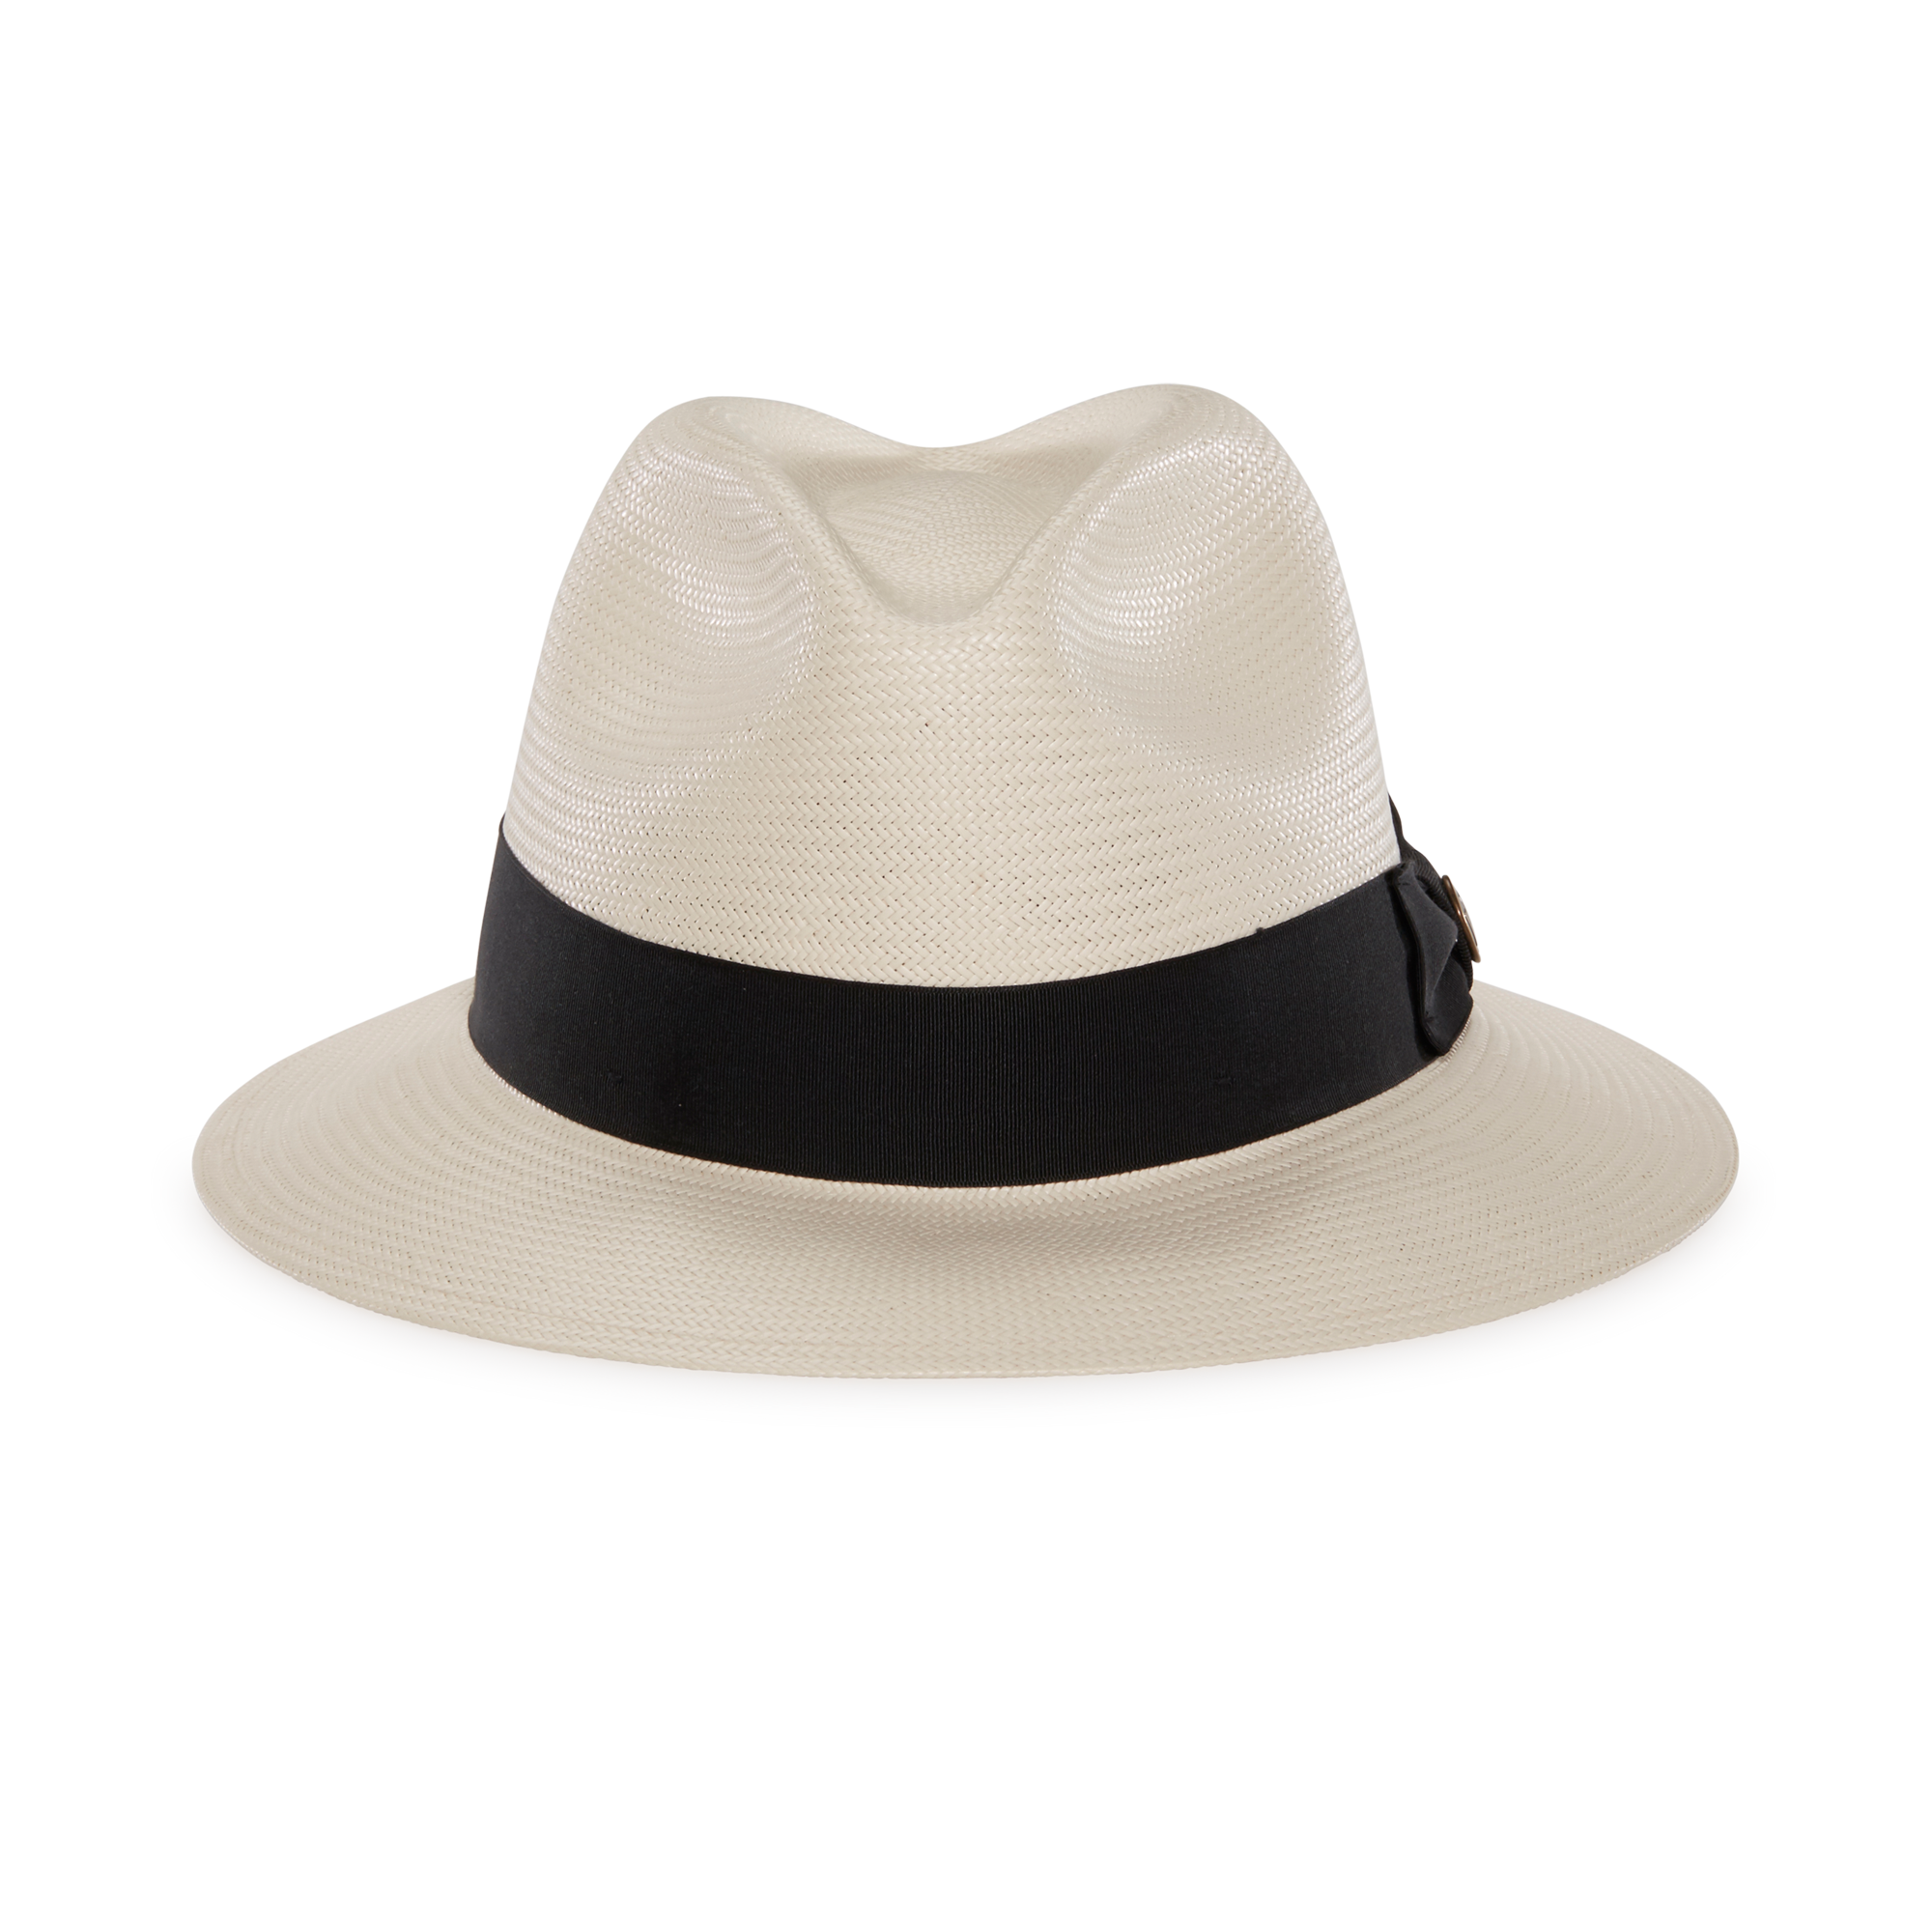 fedora hats god father - b2c catalog MHEVKFR